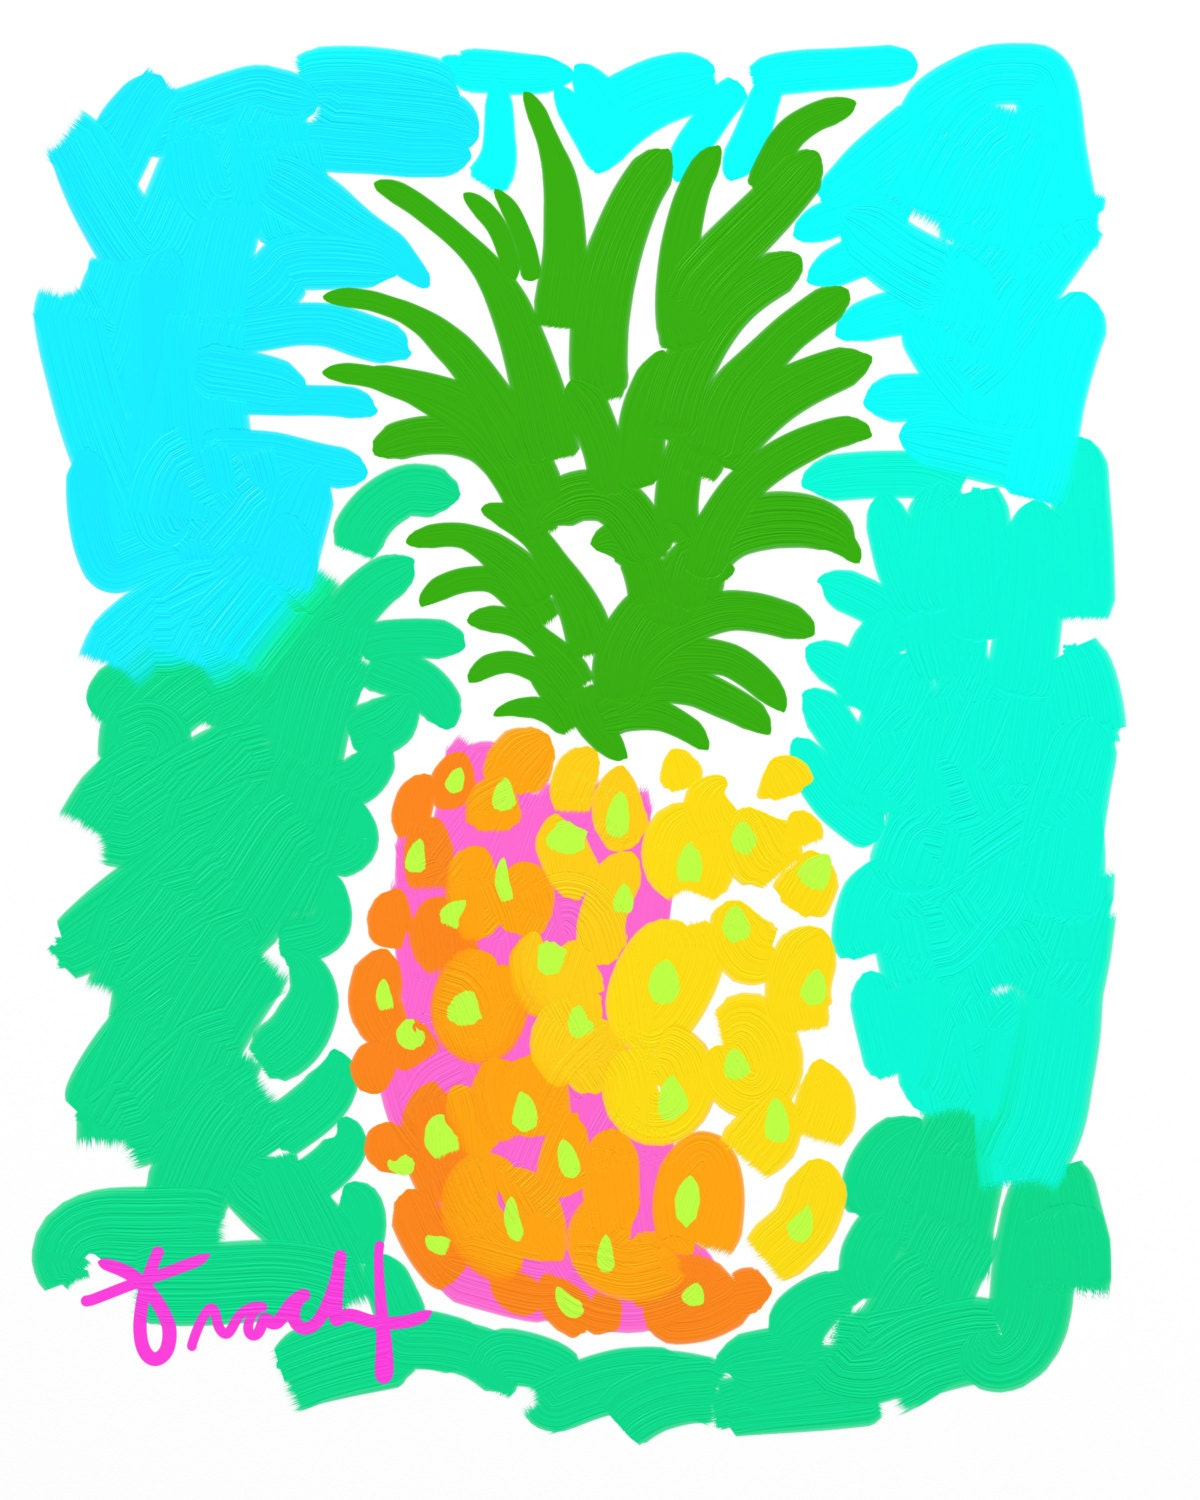 Pineapple Print 11x14 Kelly Tracht Key West Style Art Painting